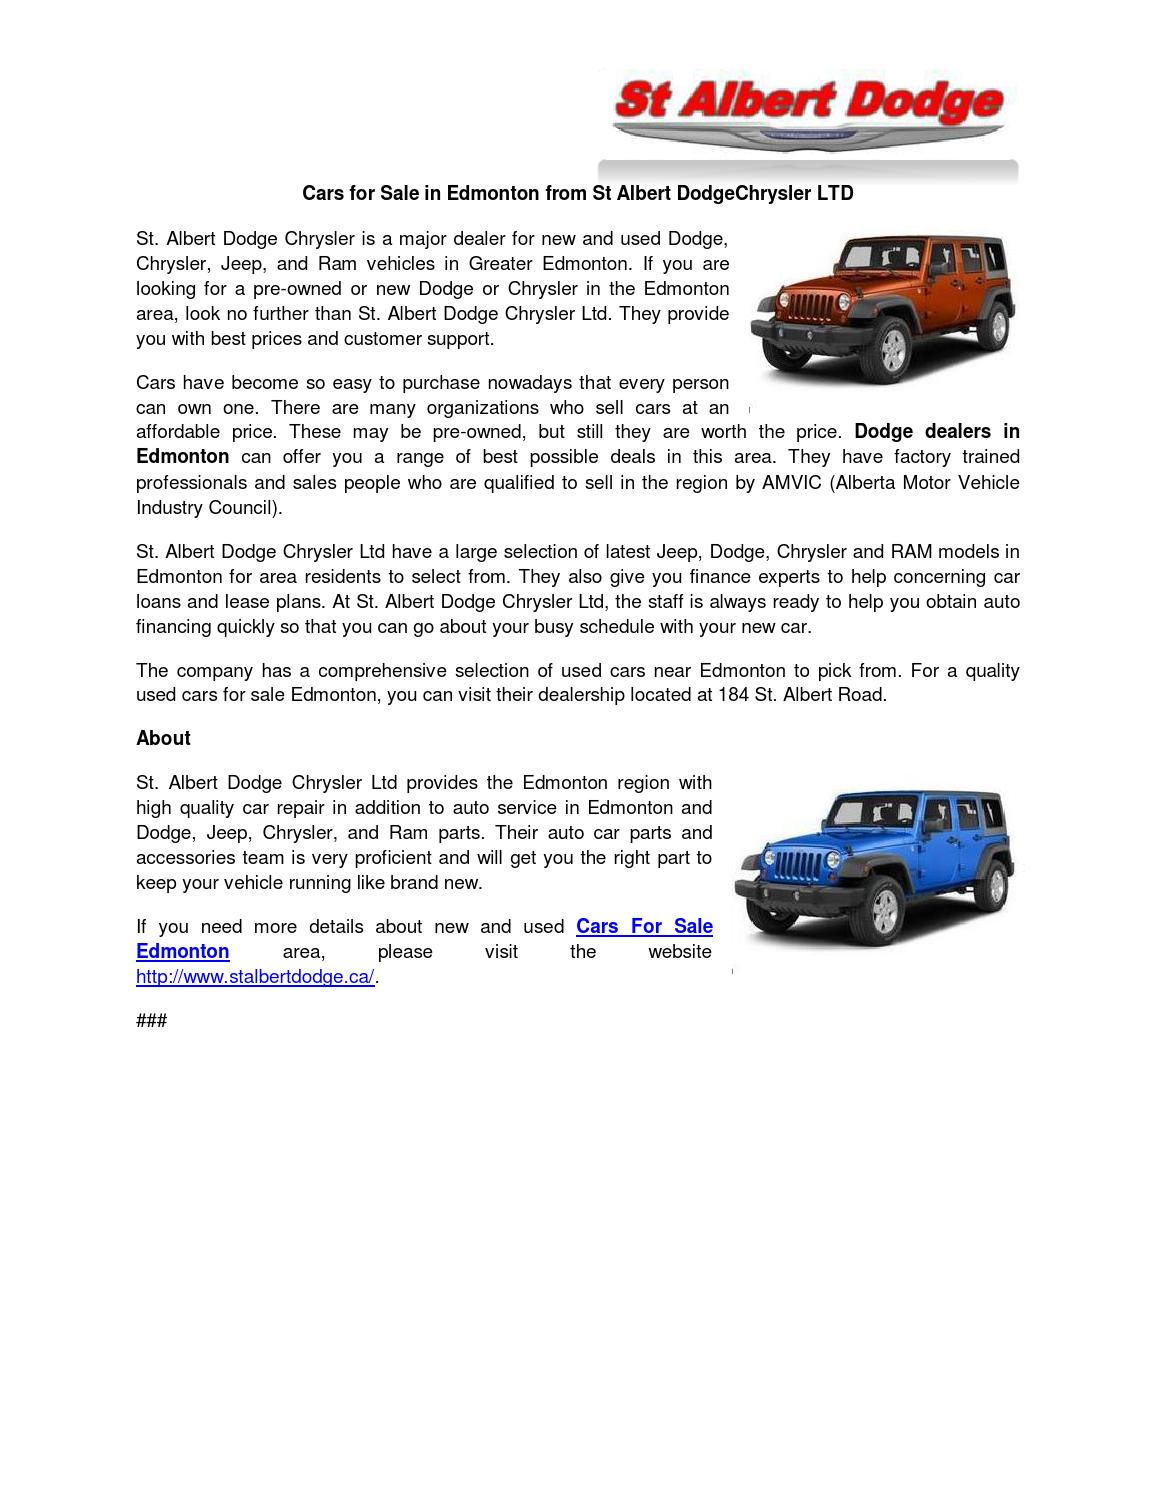 Used Cars For Sale Edmonton by St albert dodge - issuu